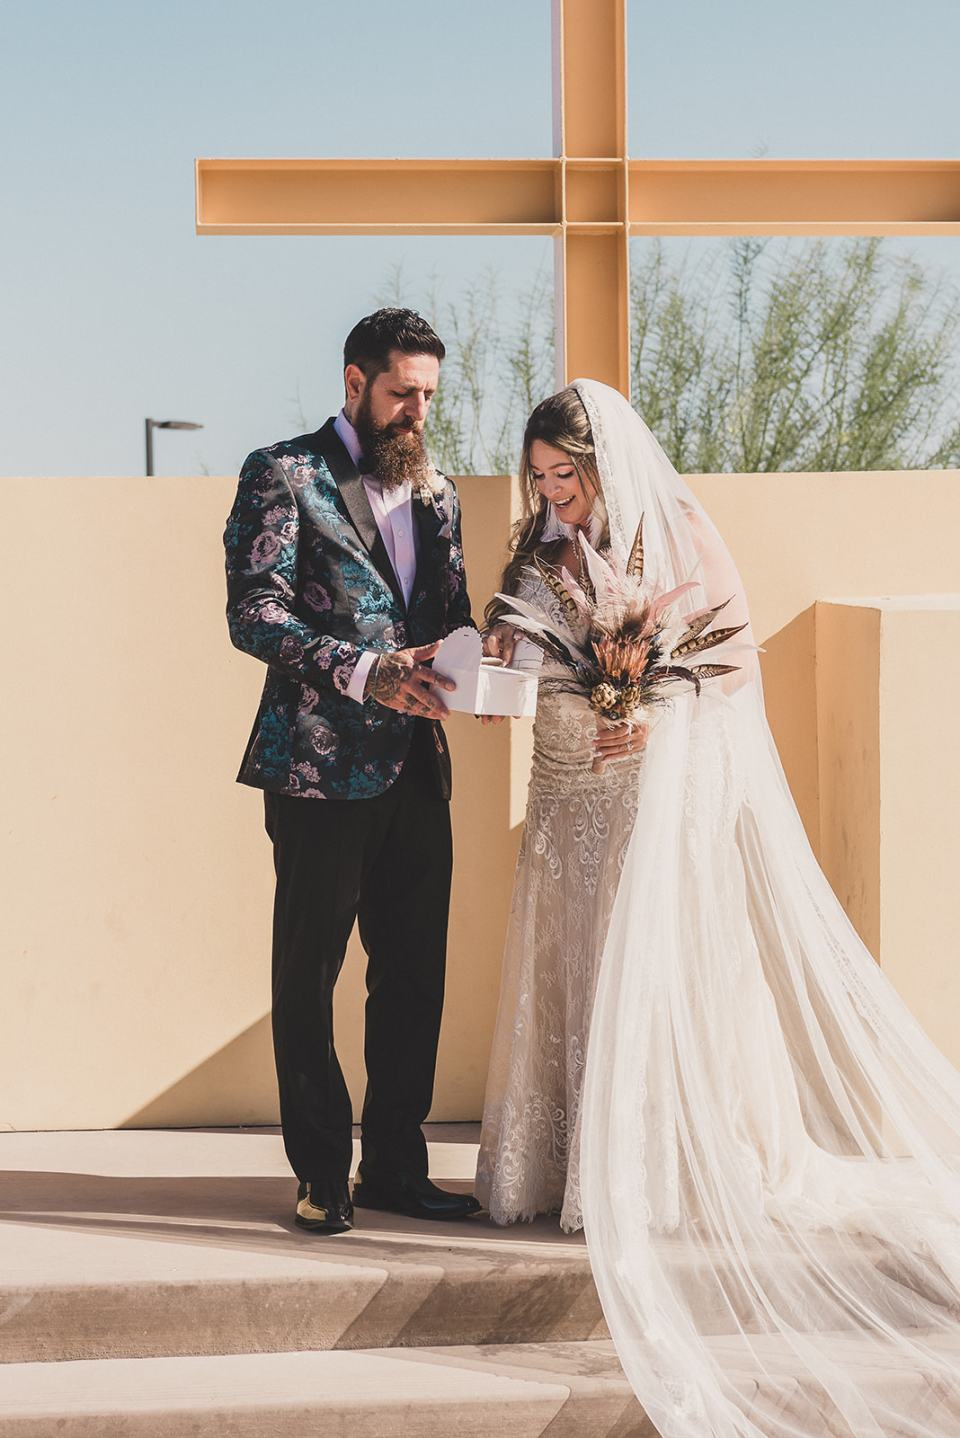 butterfly release after Las Vegas wedding ceremony